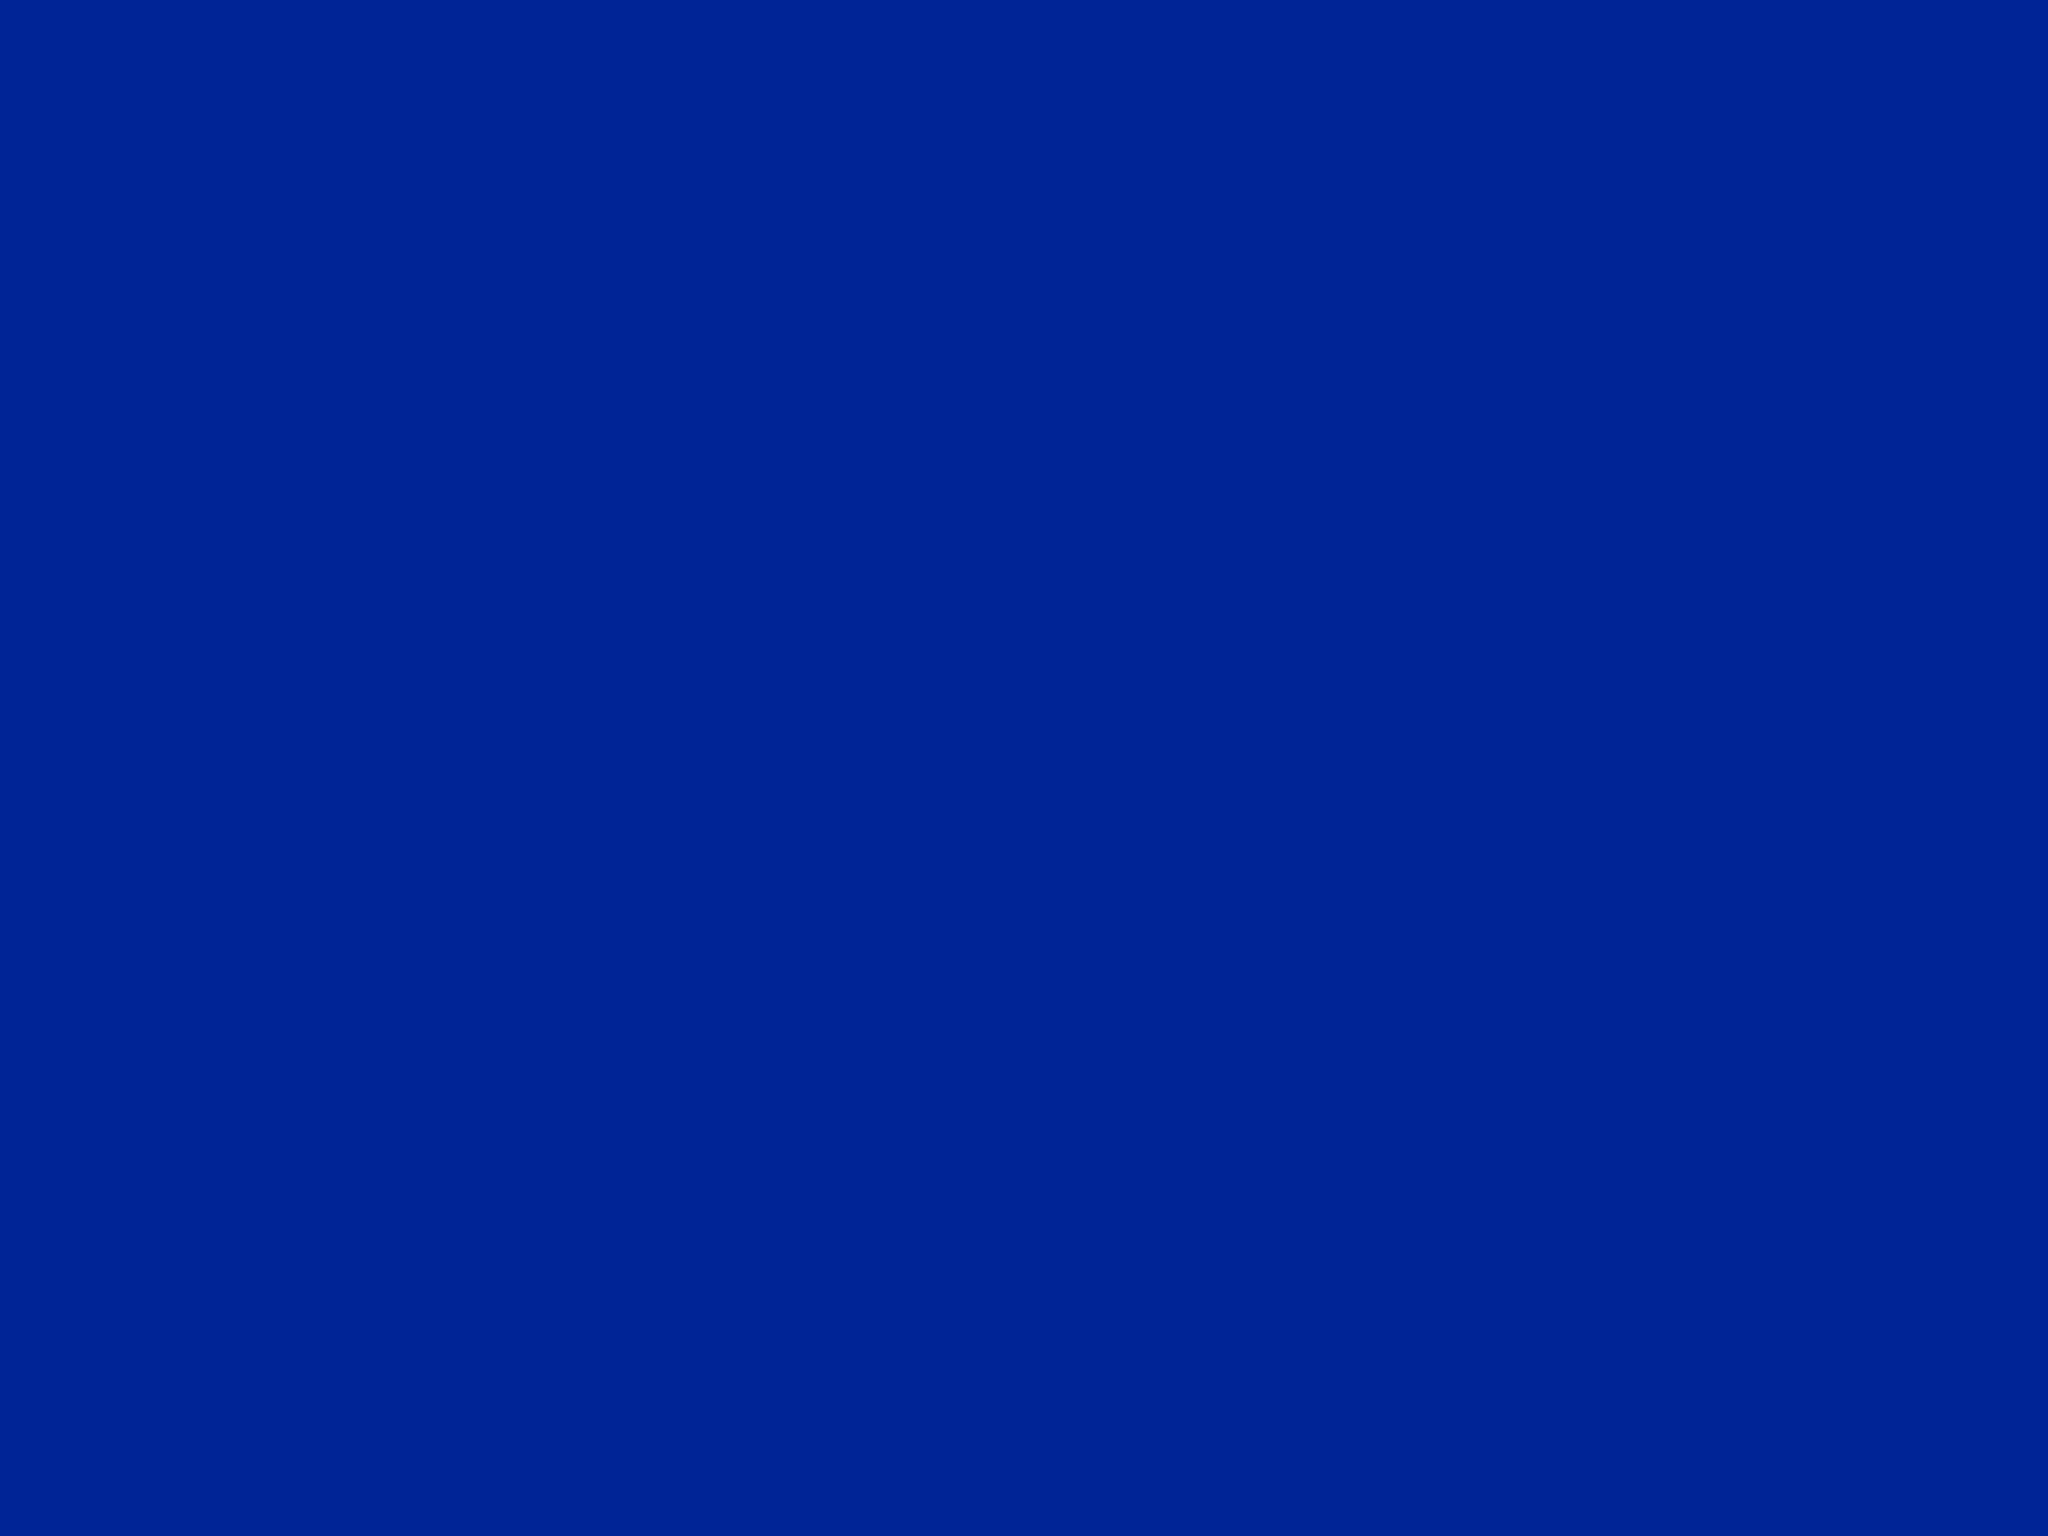 2048x1536 Imperial Blue Solid Color Background